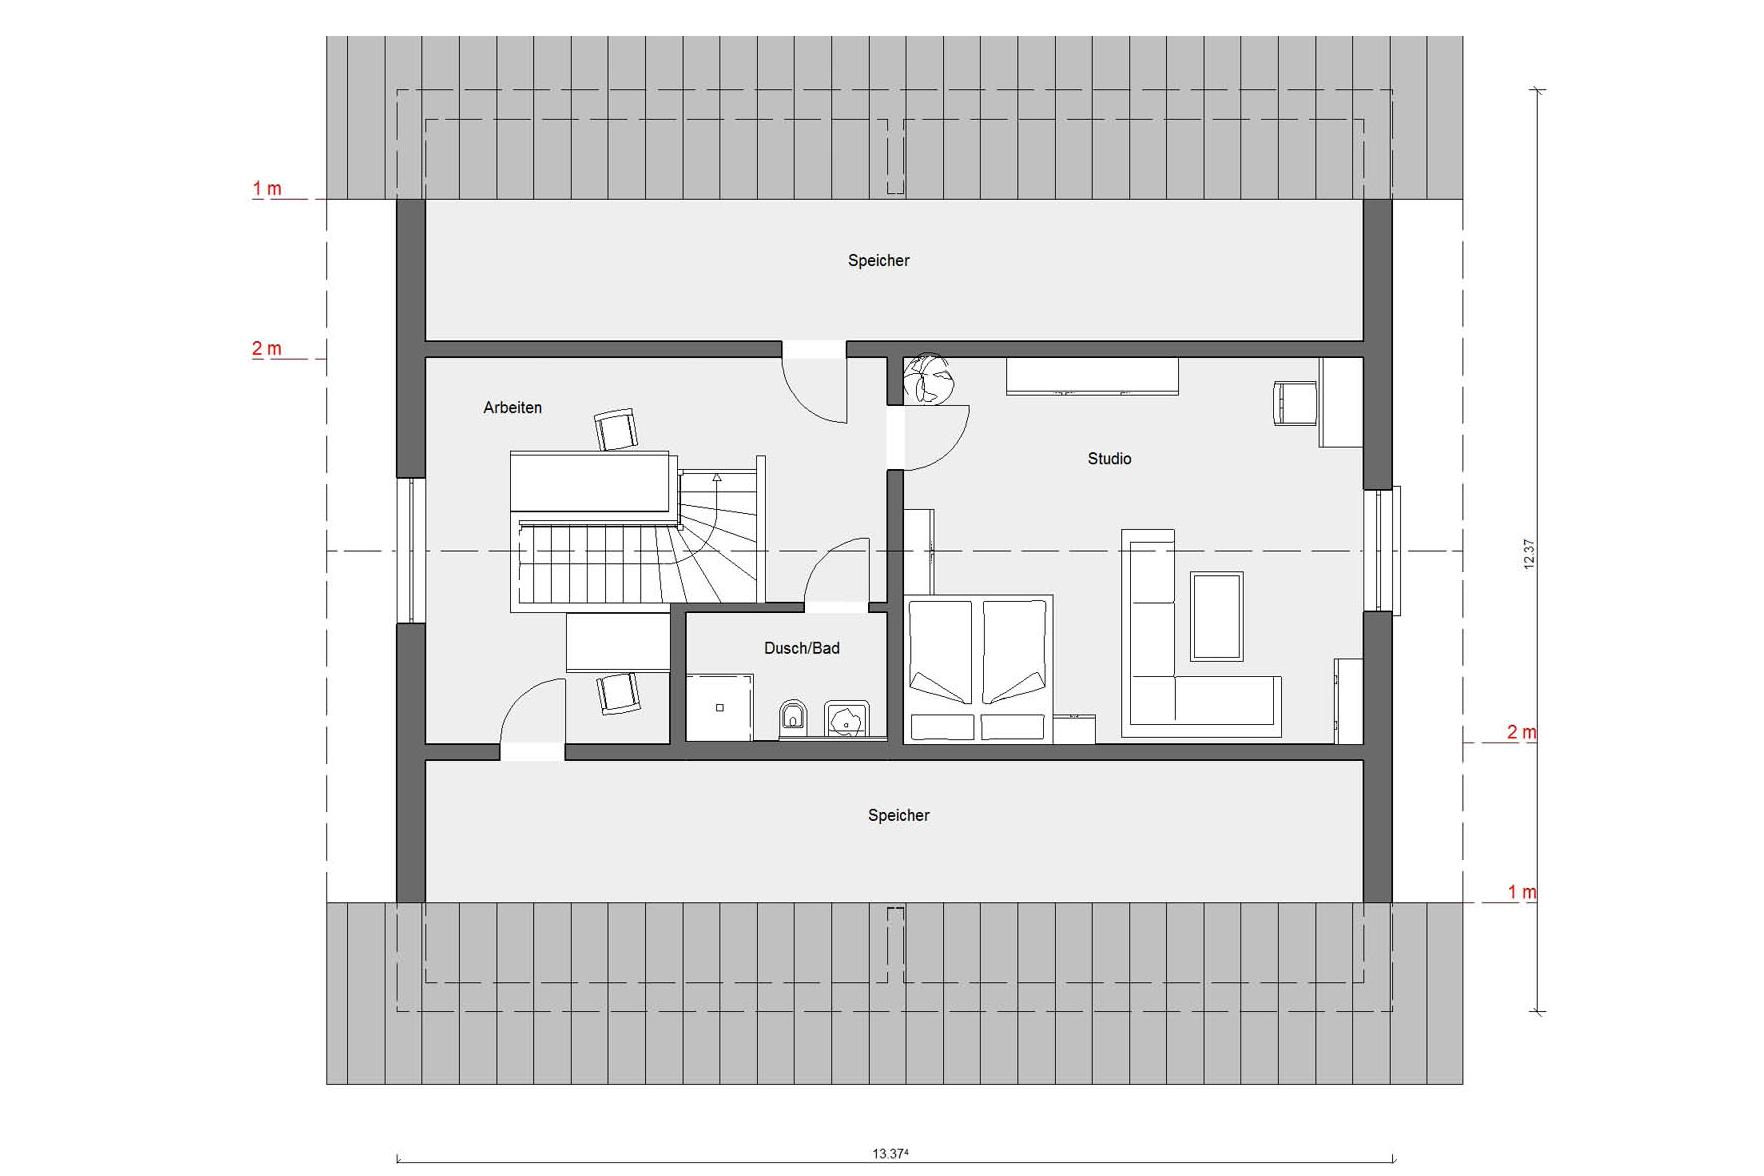 Floor plan penthouse E 15-264.1 Bungalow with pitched roof